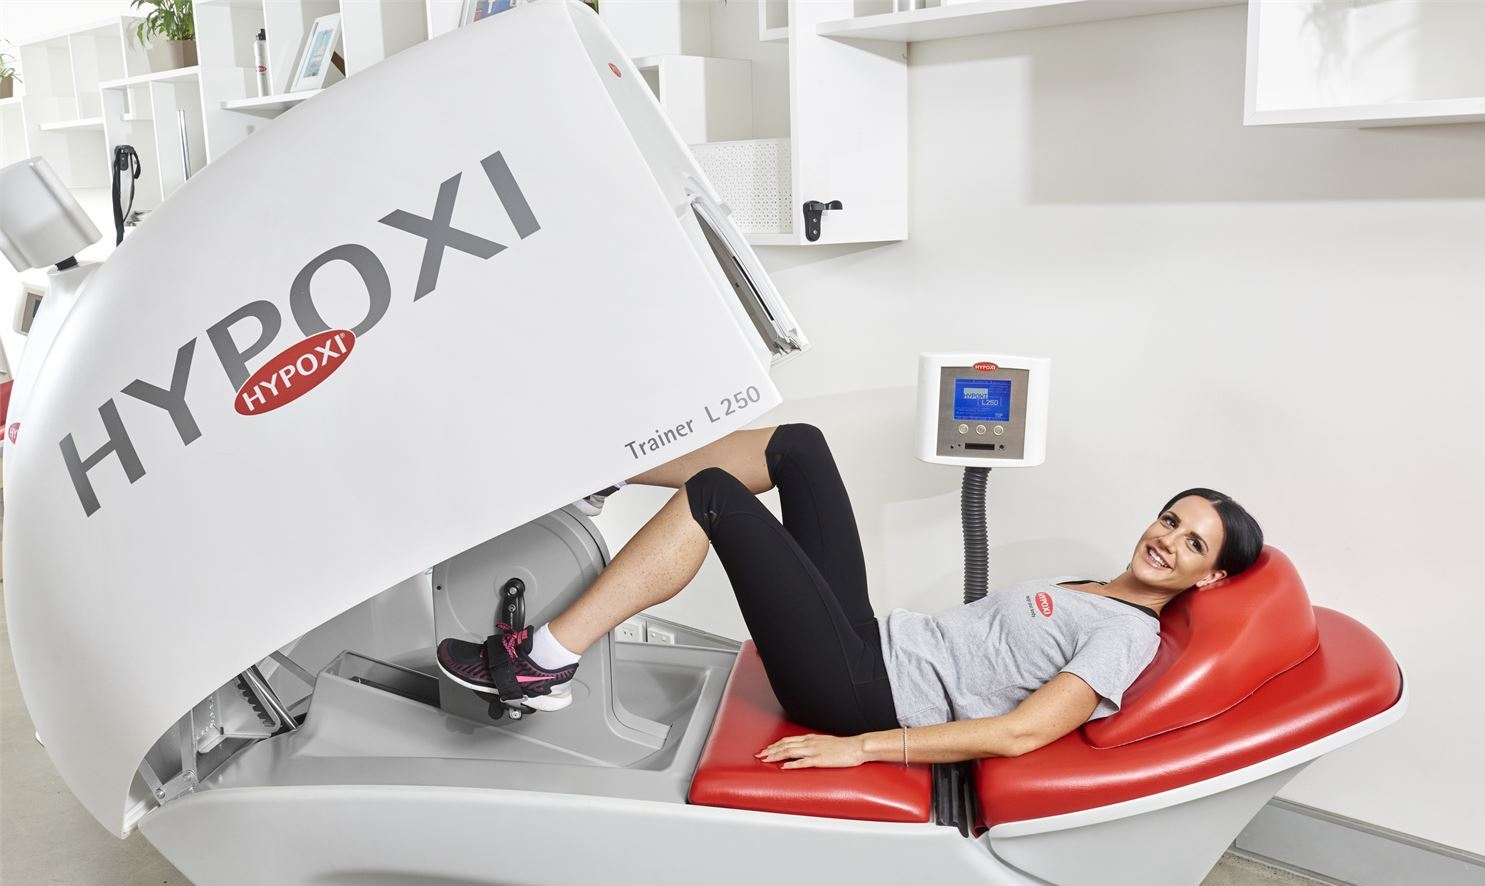 2679_56662_hypoxi-weight-loss-willagee-weight-loss-weight-the-hypoxi-l250-is-like-a-cycle-machine-from-the-future_xl.jpg